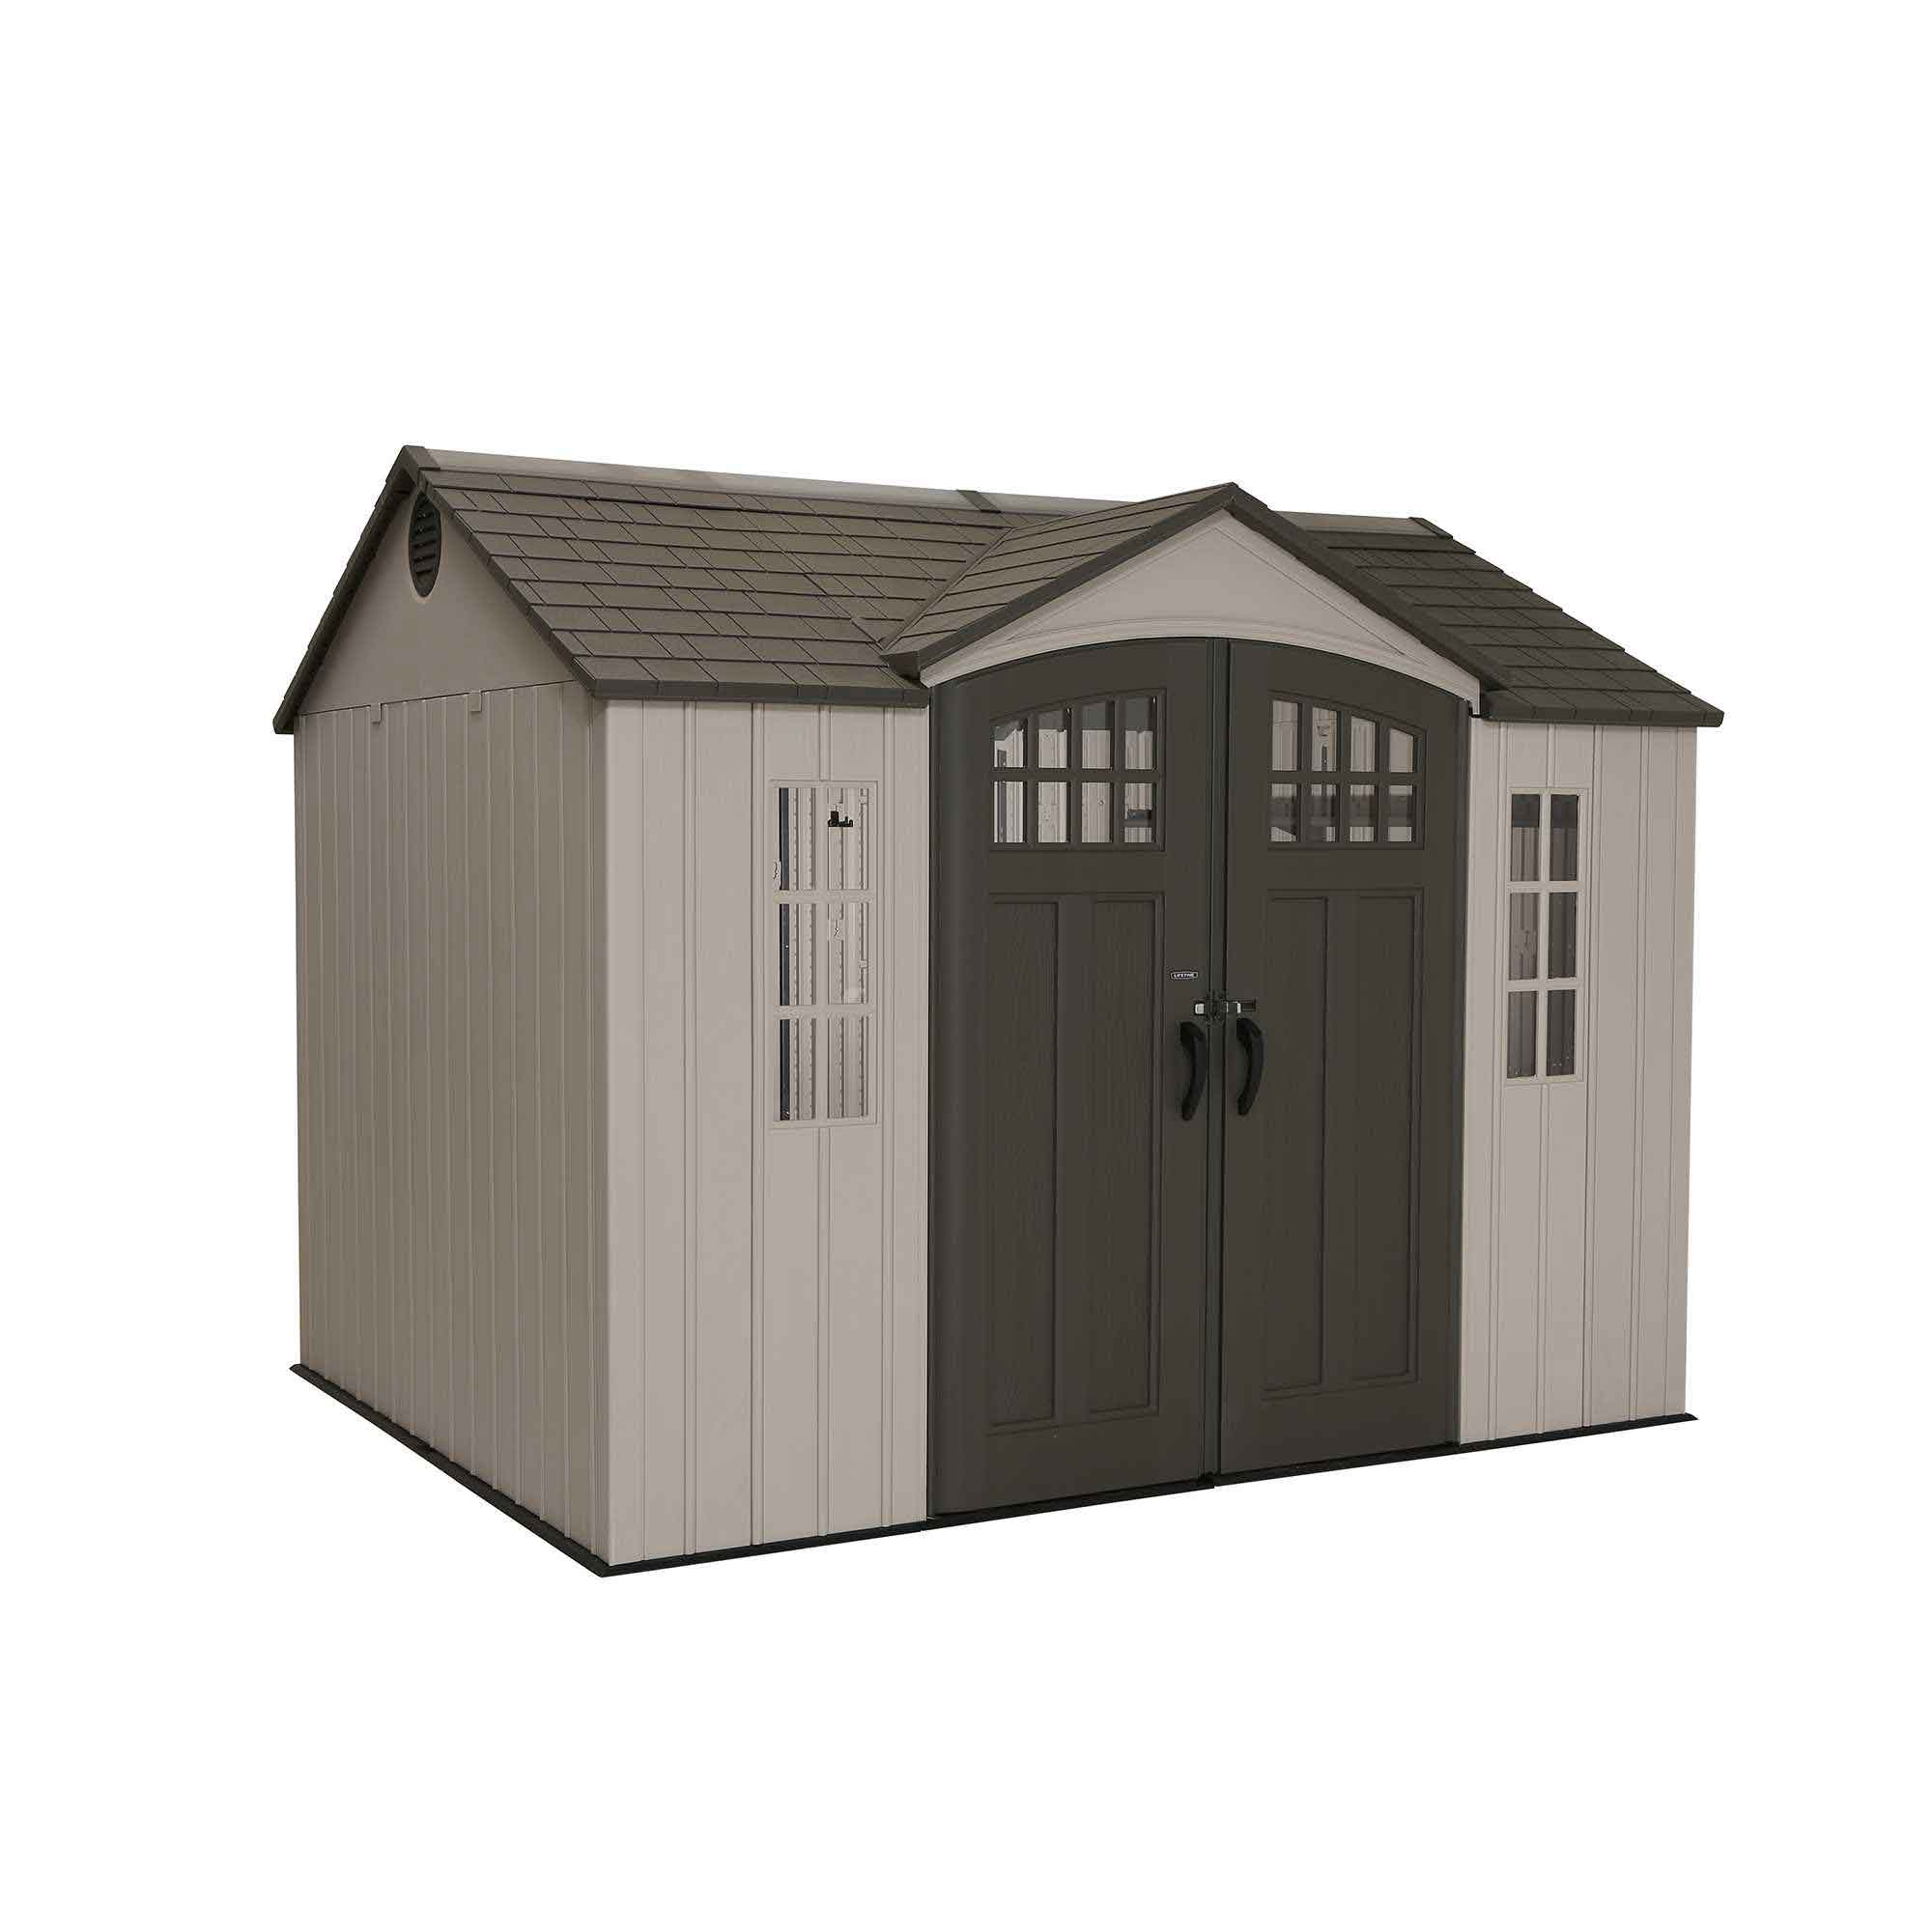 shop reverse garden overlap product x asp sheds treated insitu shed onduline apex storage pressure forest